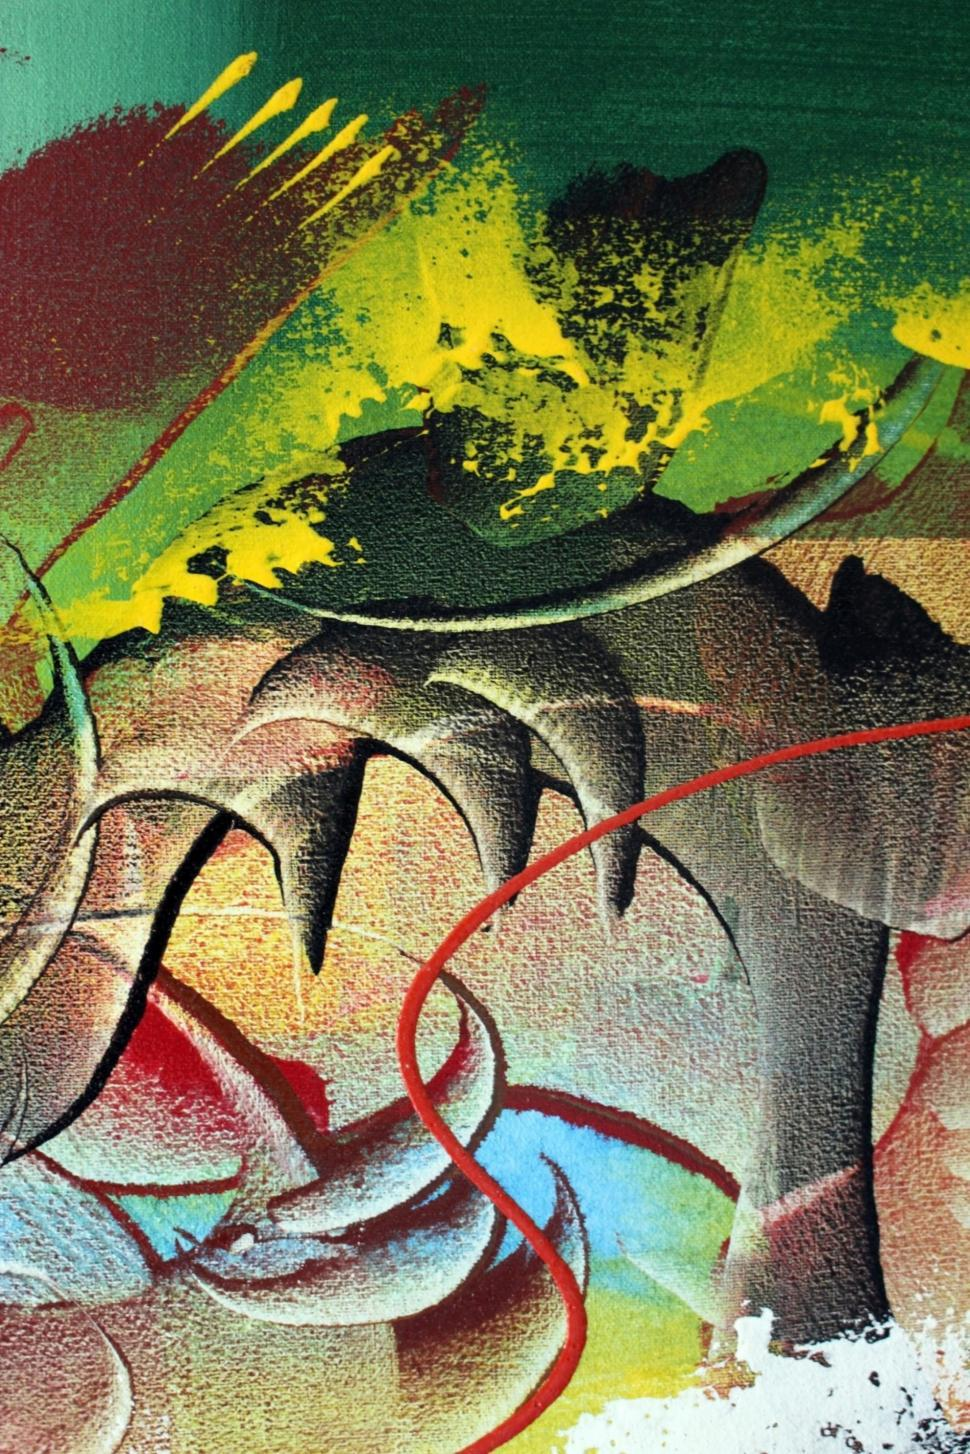 Download Free Stock HD Photo of Detail of a bright abstract painted art background  Online